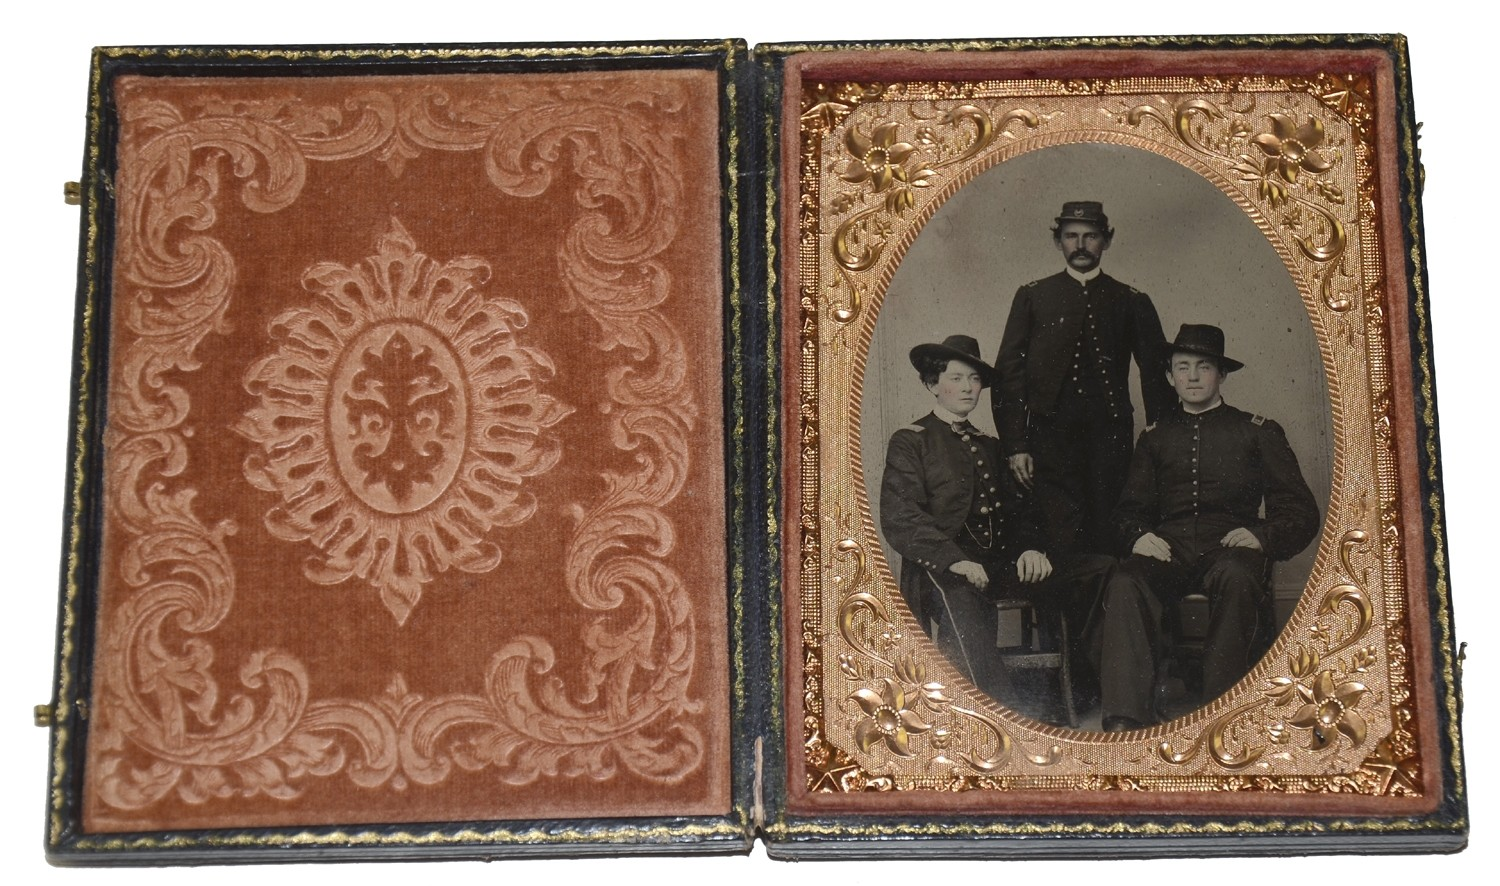 WONDERFULLY CLEAR QUARTER PLATE TINTYPE OF THREE OFFICERS - ONE ID'D TO 8TH NEW HAMPSHIRE